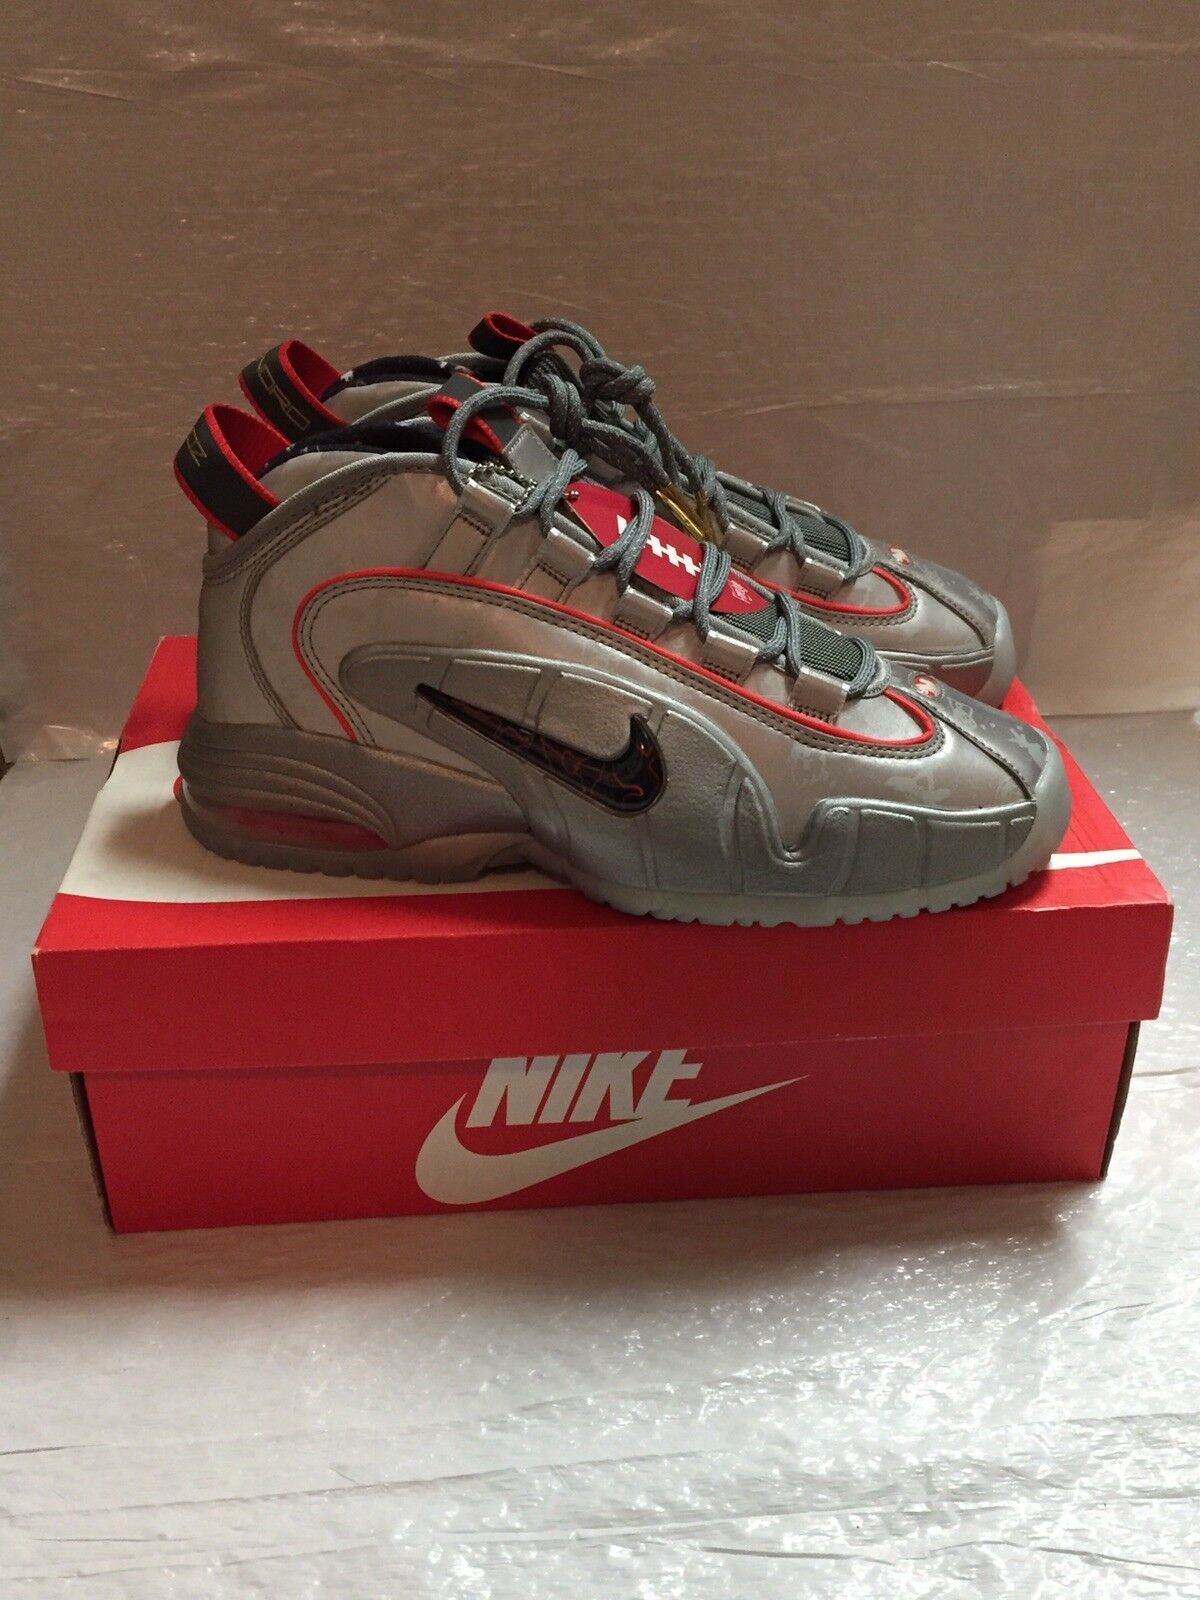 Nike Air Max Penny DB Doernbecher 728590 001 Size 8 Limited Deadstock Authentic